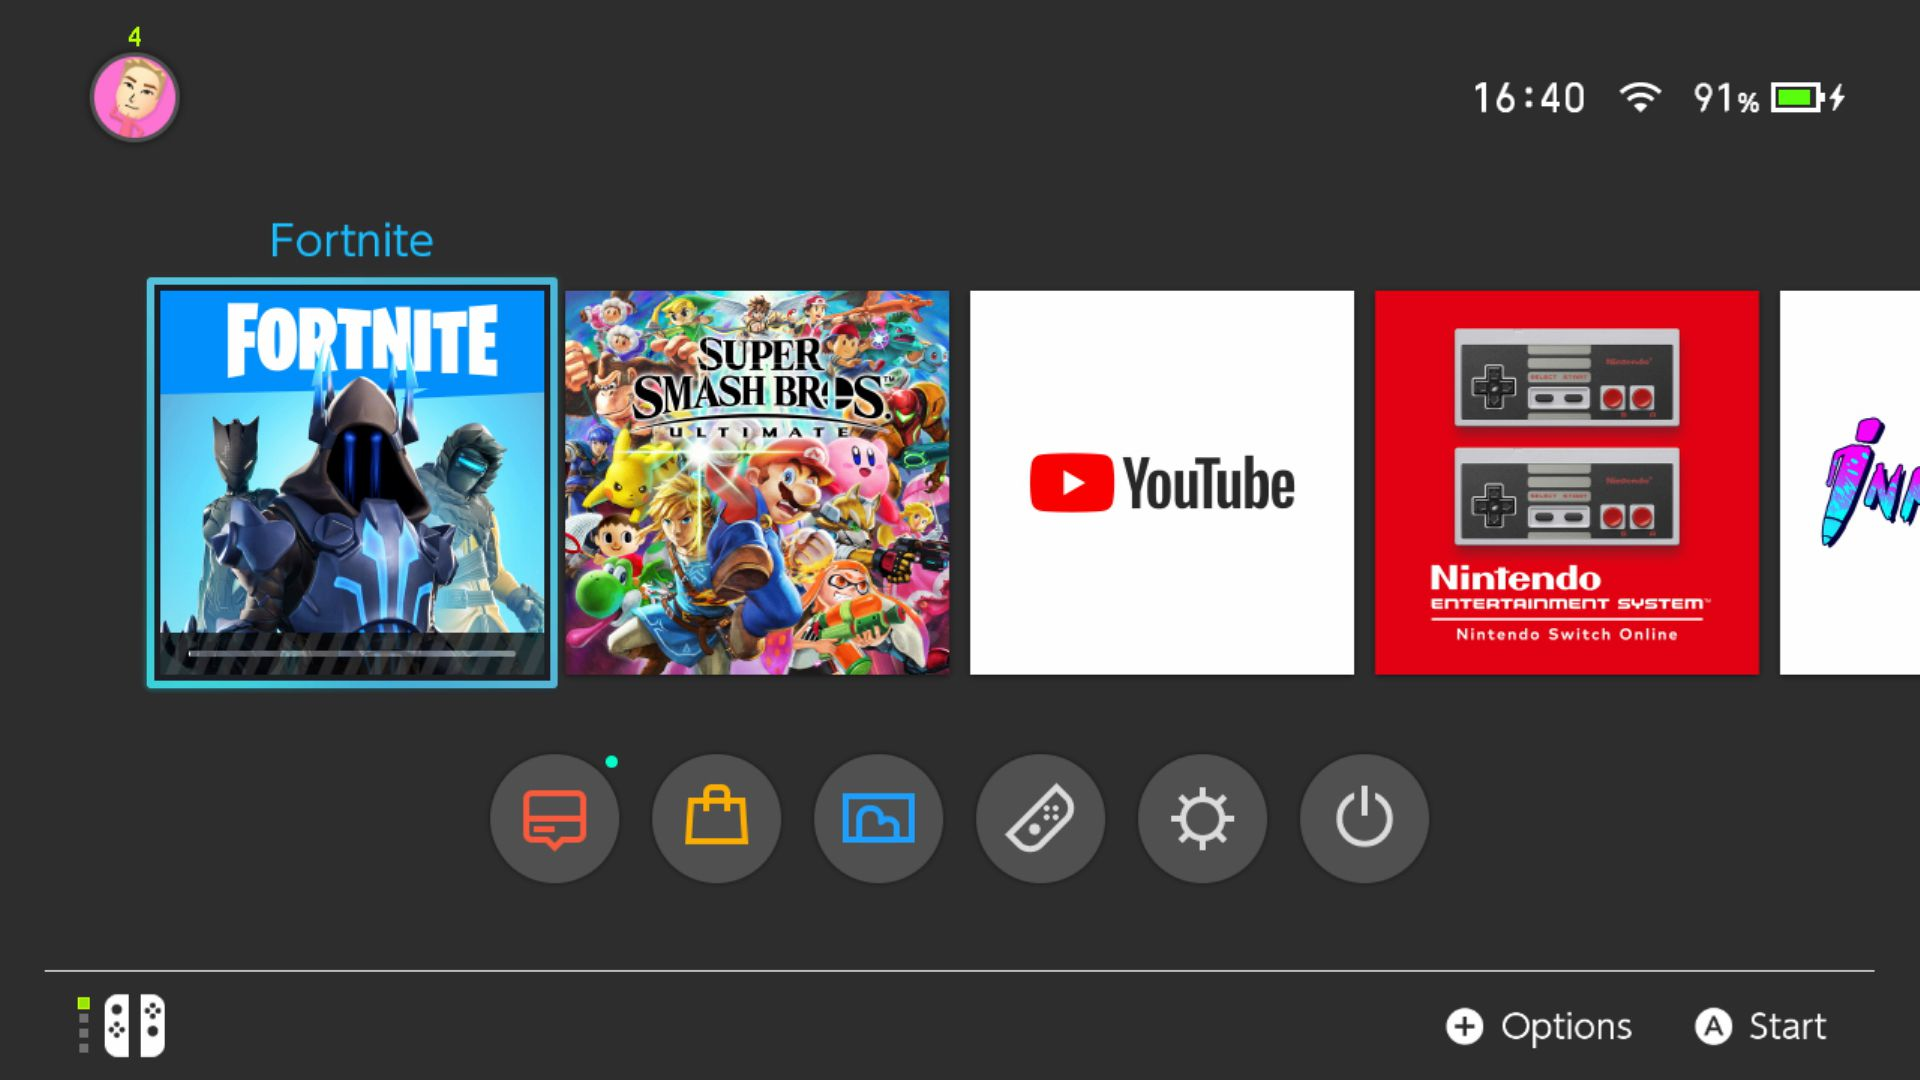 How to Download and Play Fortnite on Switch